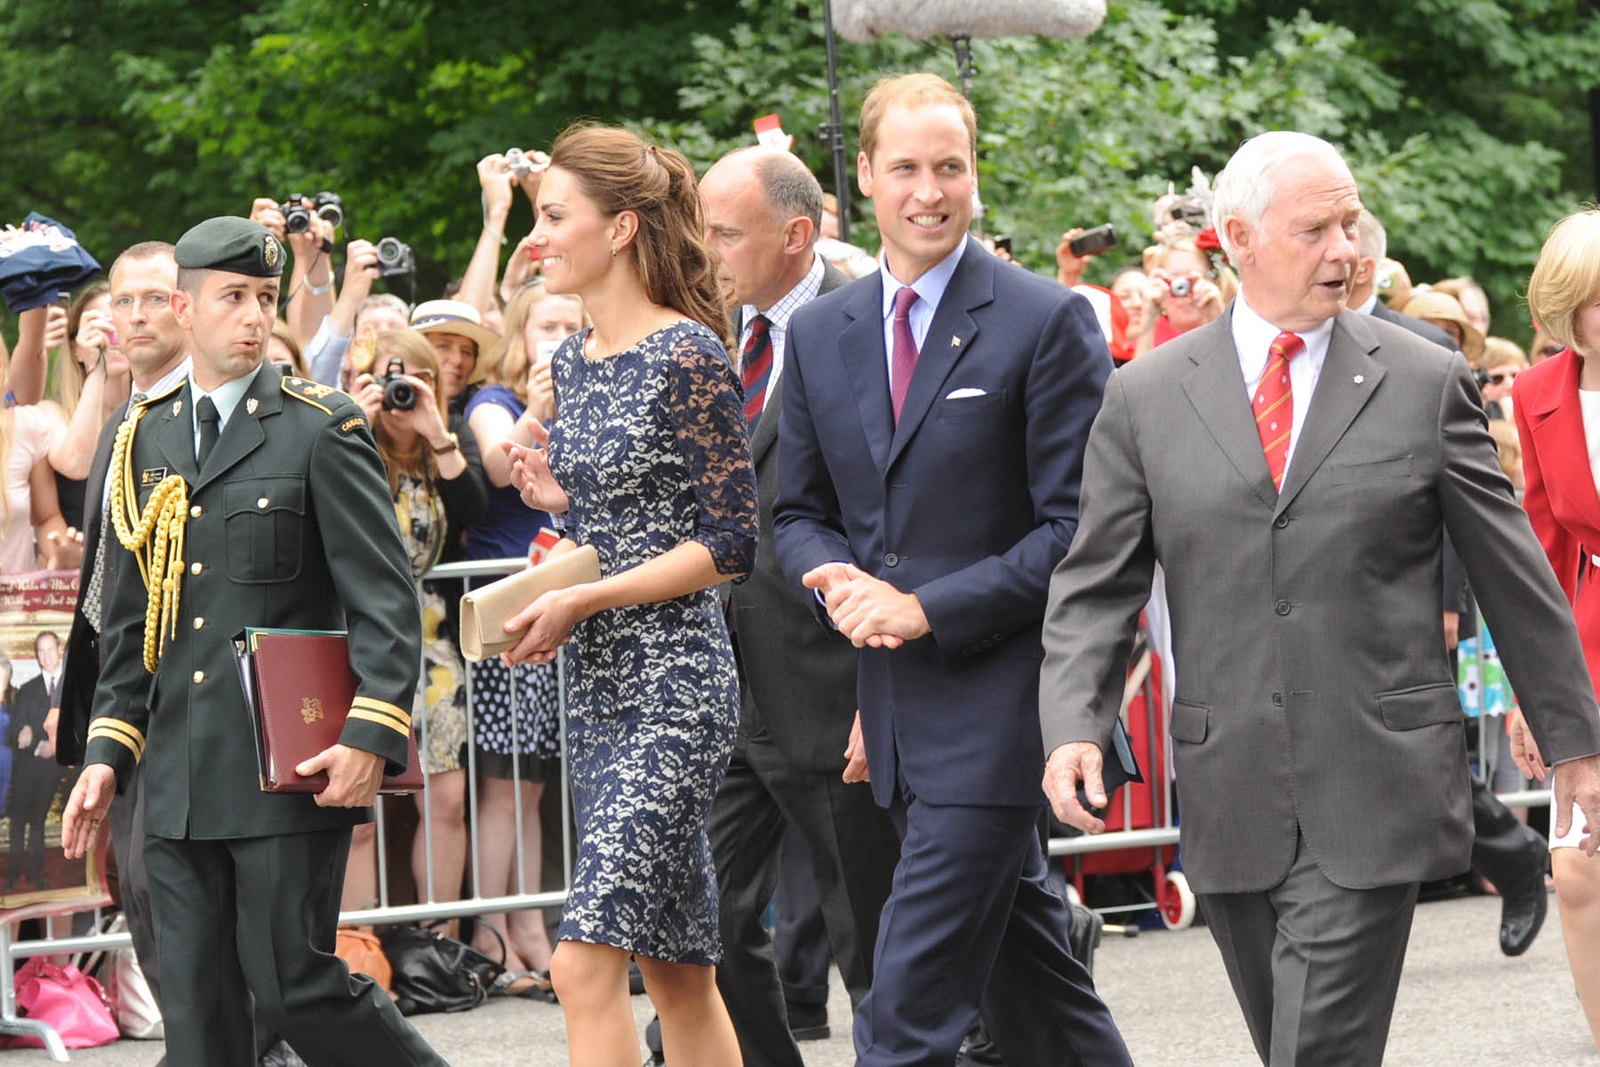 The Duke and Duchess of cambridge had a longer walkabout during the royal tour of canada in 2011